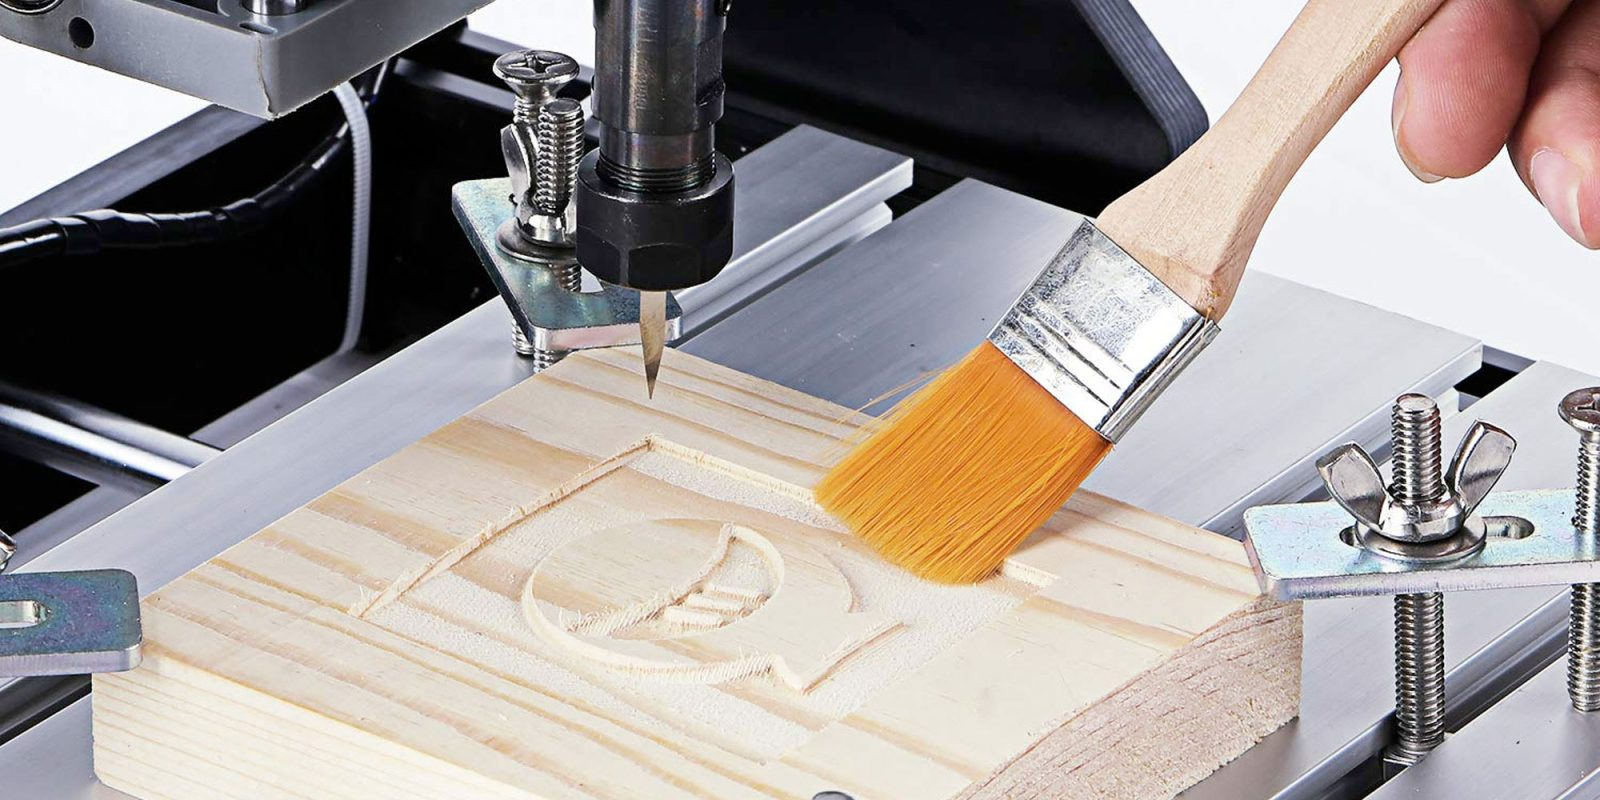 Take your DIY creativity to the next level w/ a CNC router: $190